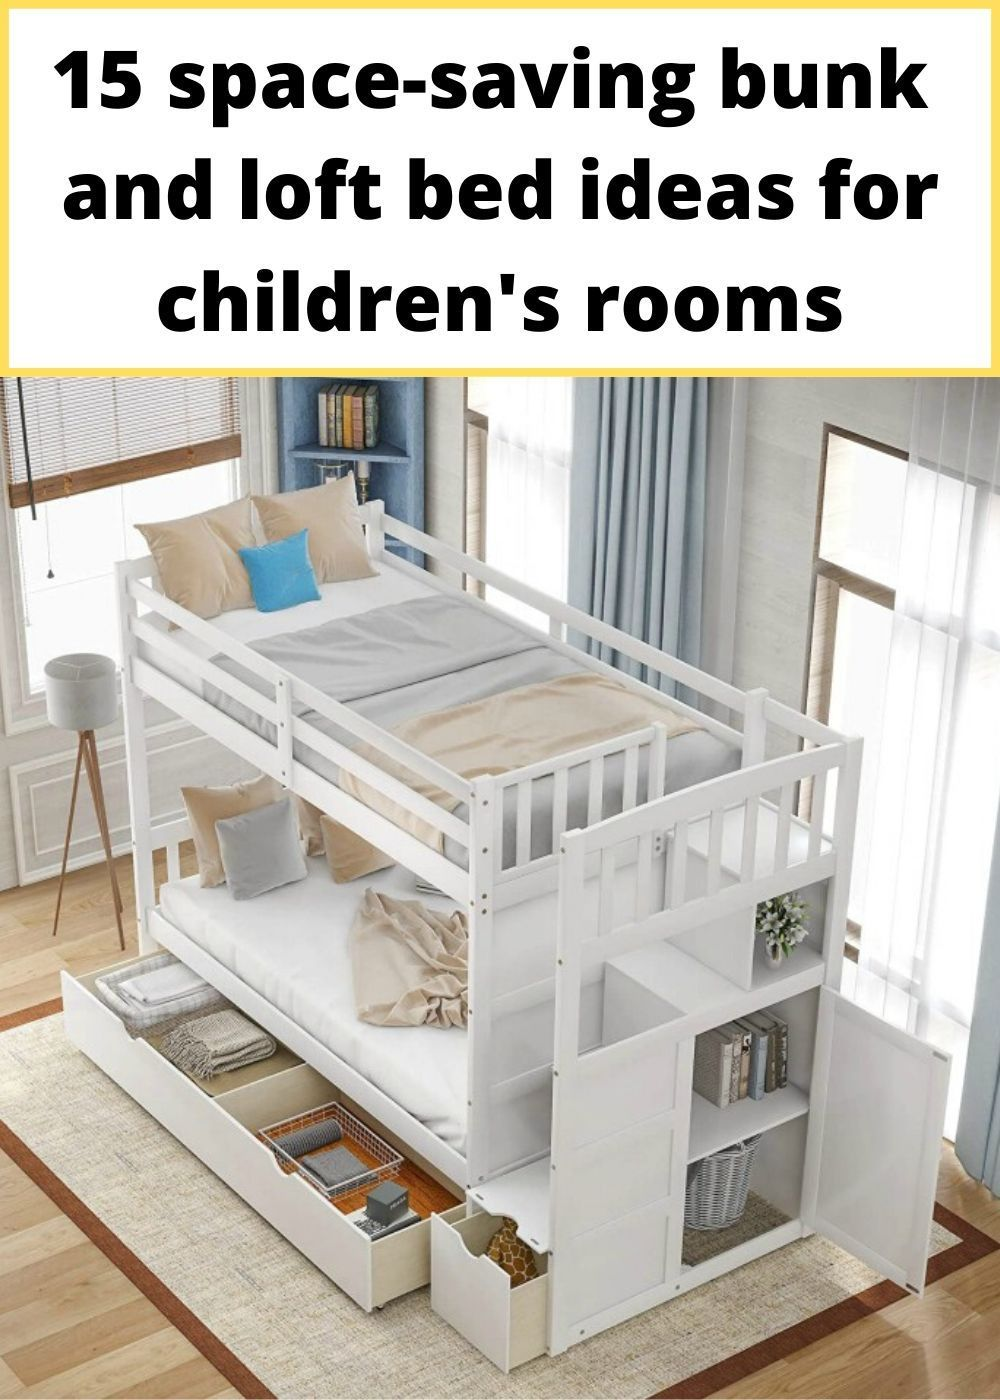 15 Space Saving Bunk And Loft Bed Ideas For Children S Rooms Bunk Beds With Drawers Furniture For Small Spaces Tiny House Hacks